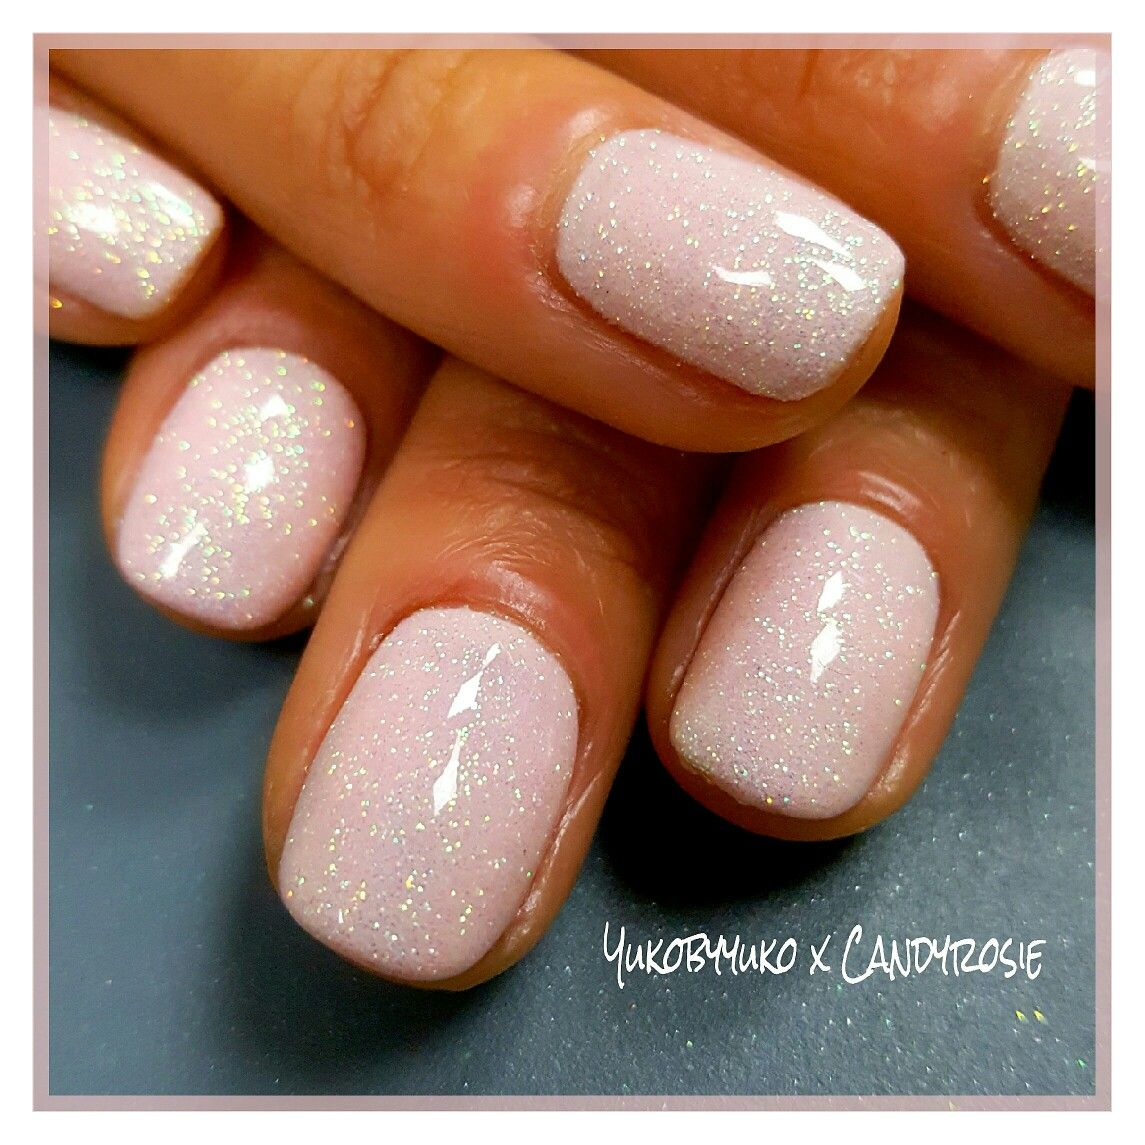 SHELLAC Naked naivete + Mermaid effect powder INDIGO NAILS ...